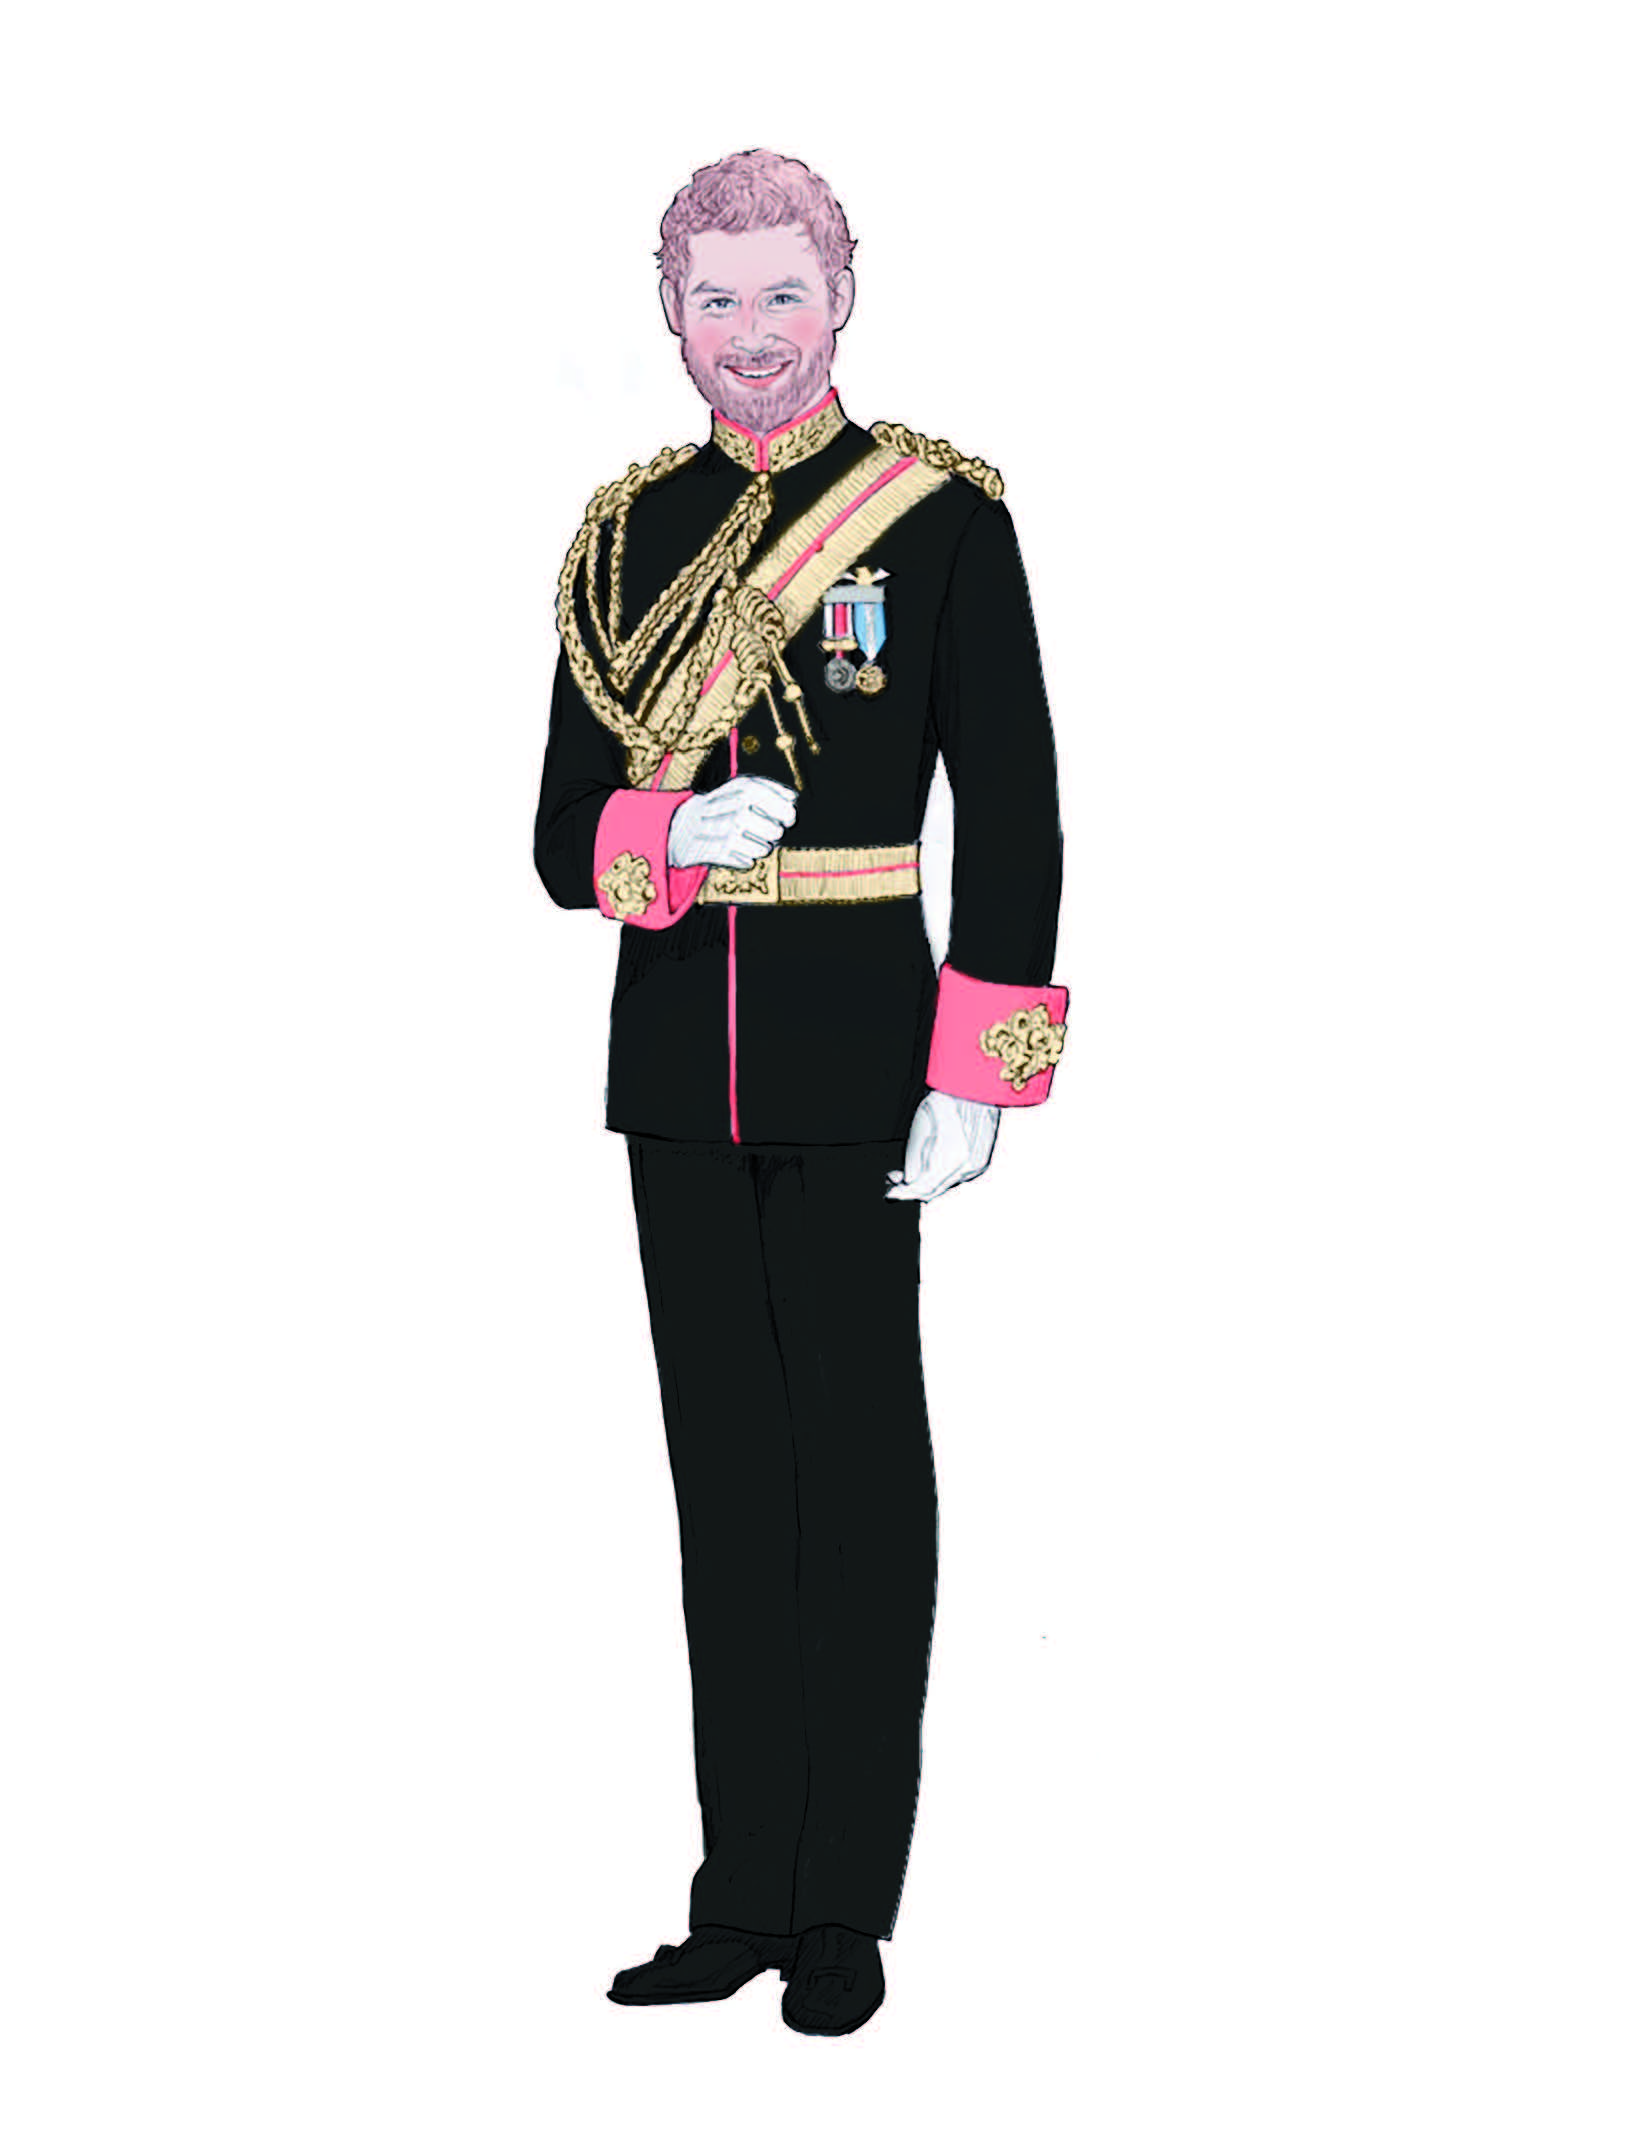 Prince Harry illustration by Ashton-Drake